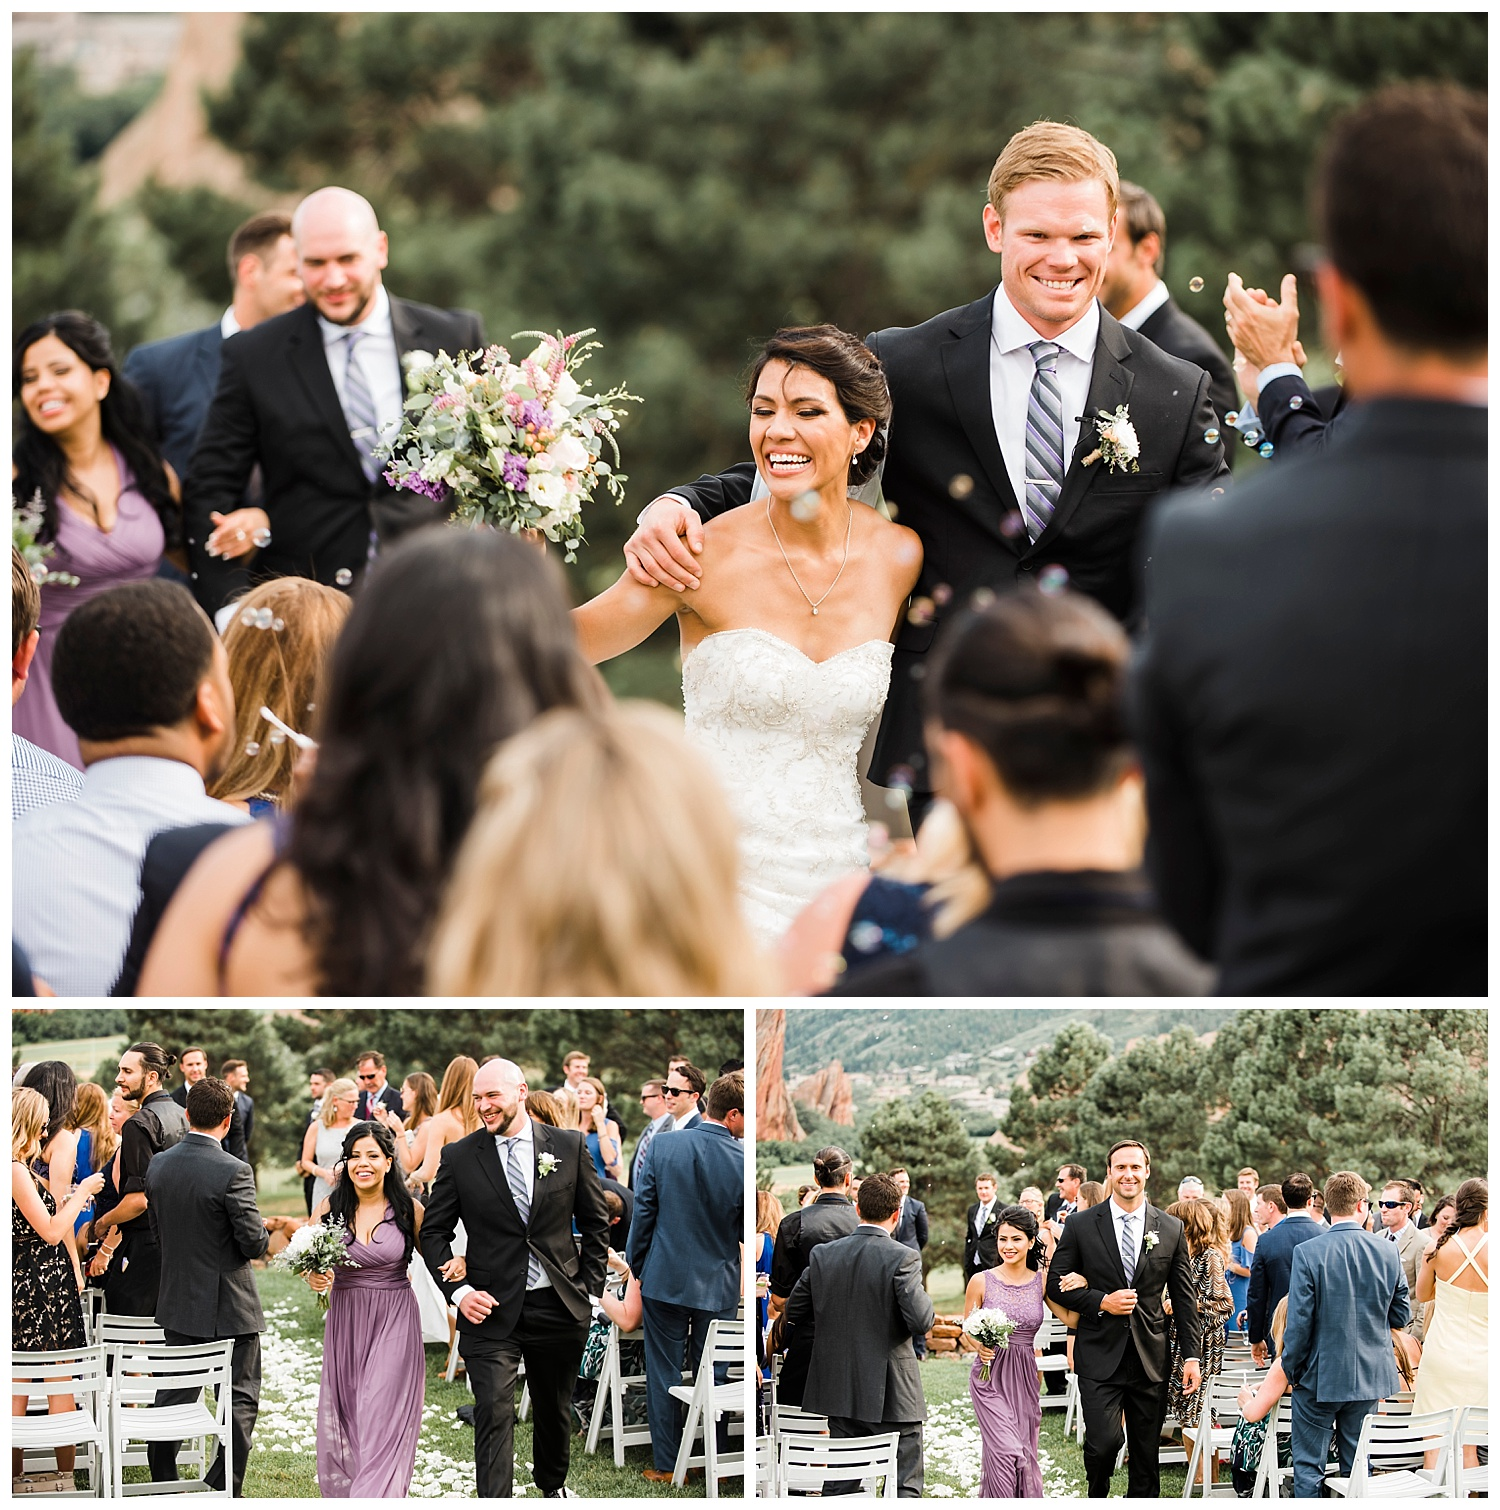 Arrowhead_Golf_Course_Wedding_Littleton_Colorado_Apollo_Fields_162.jpg